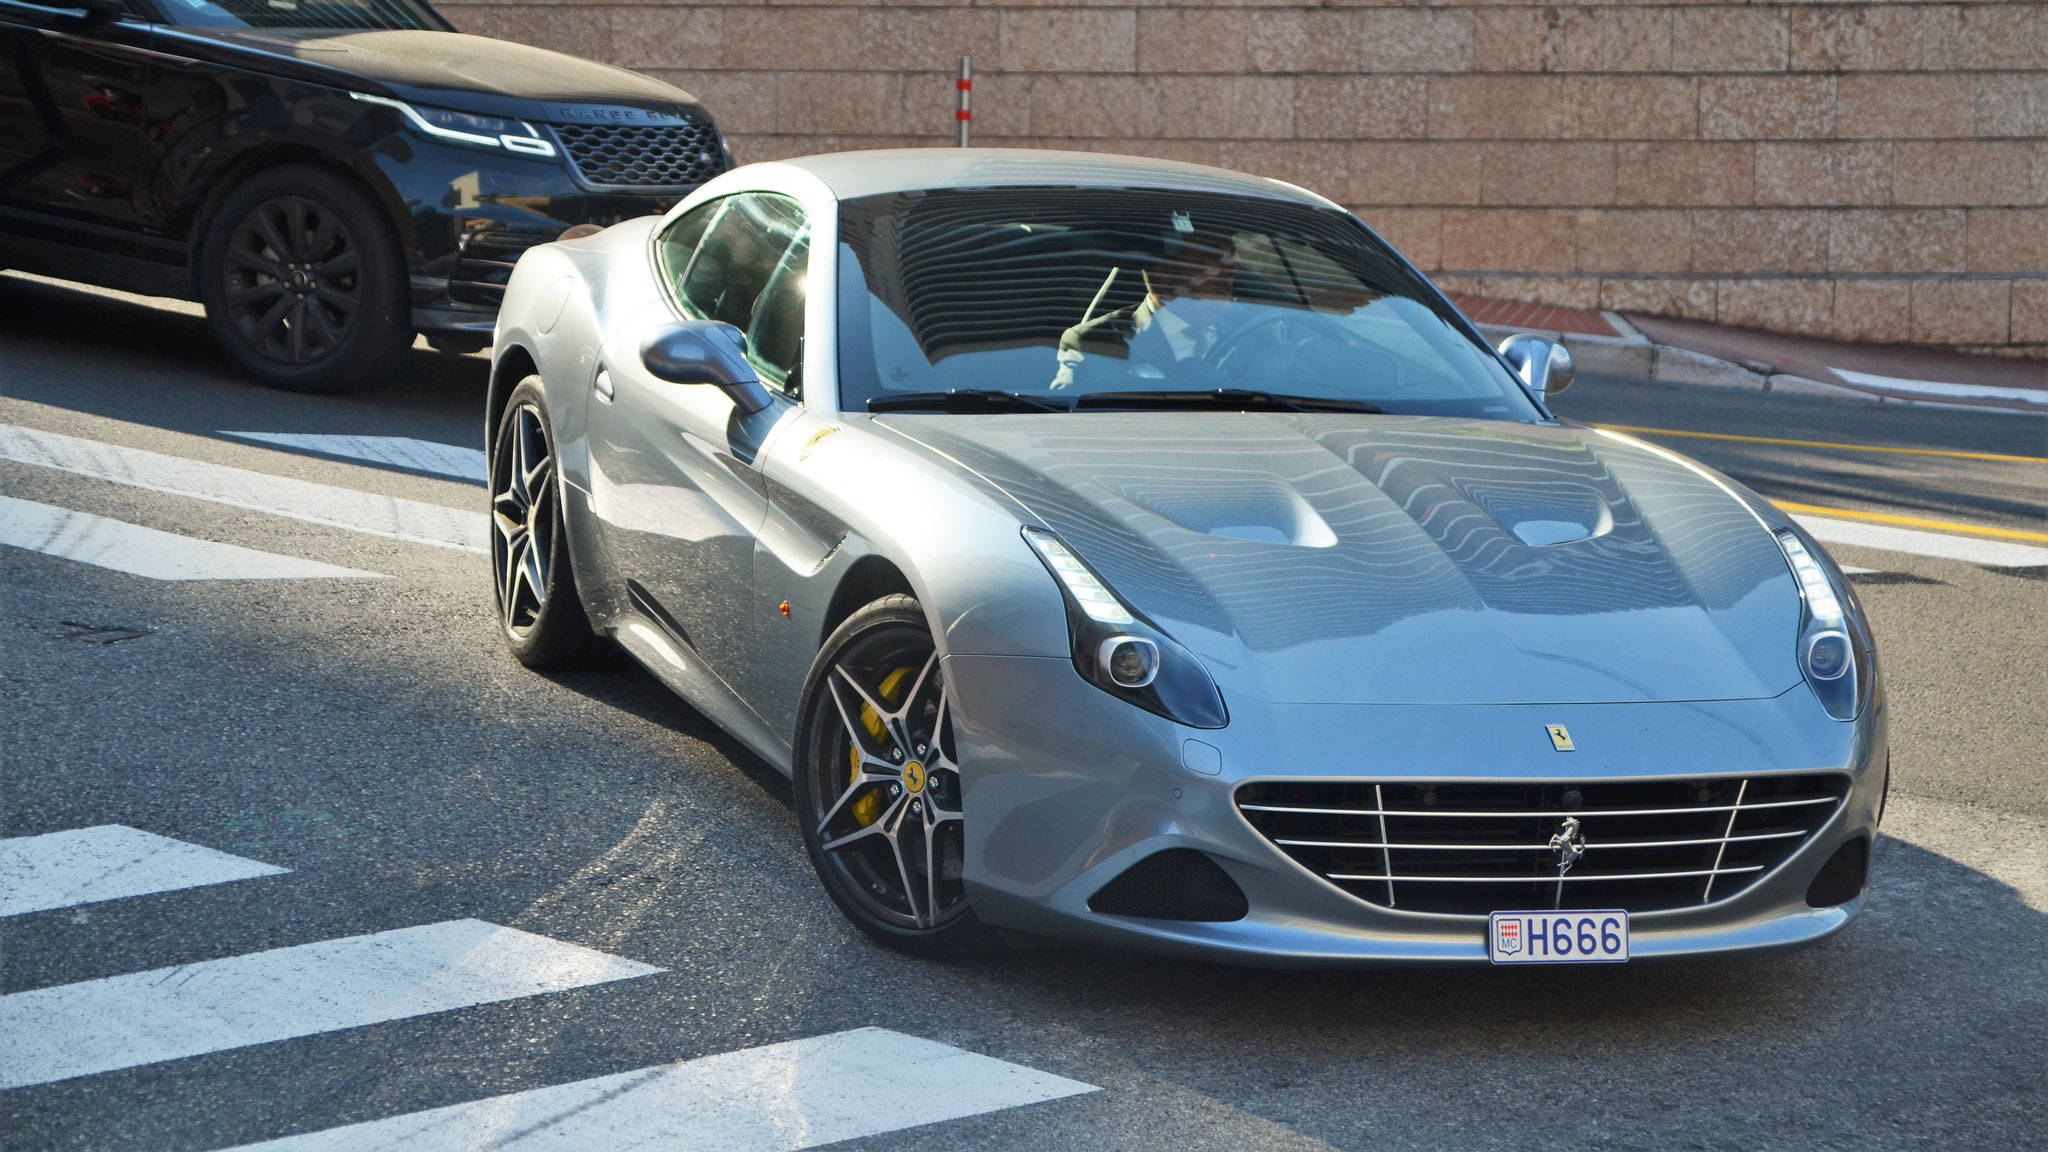 Ferrari California T - H666 (MC)